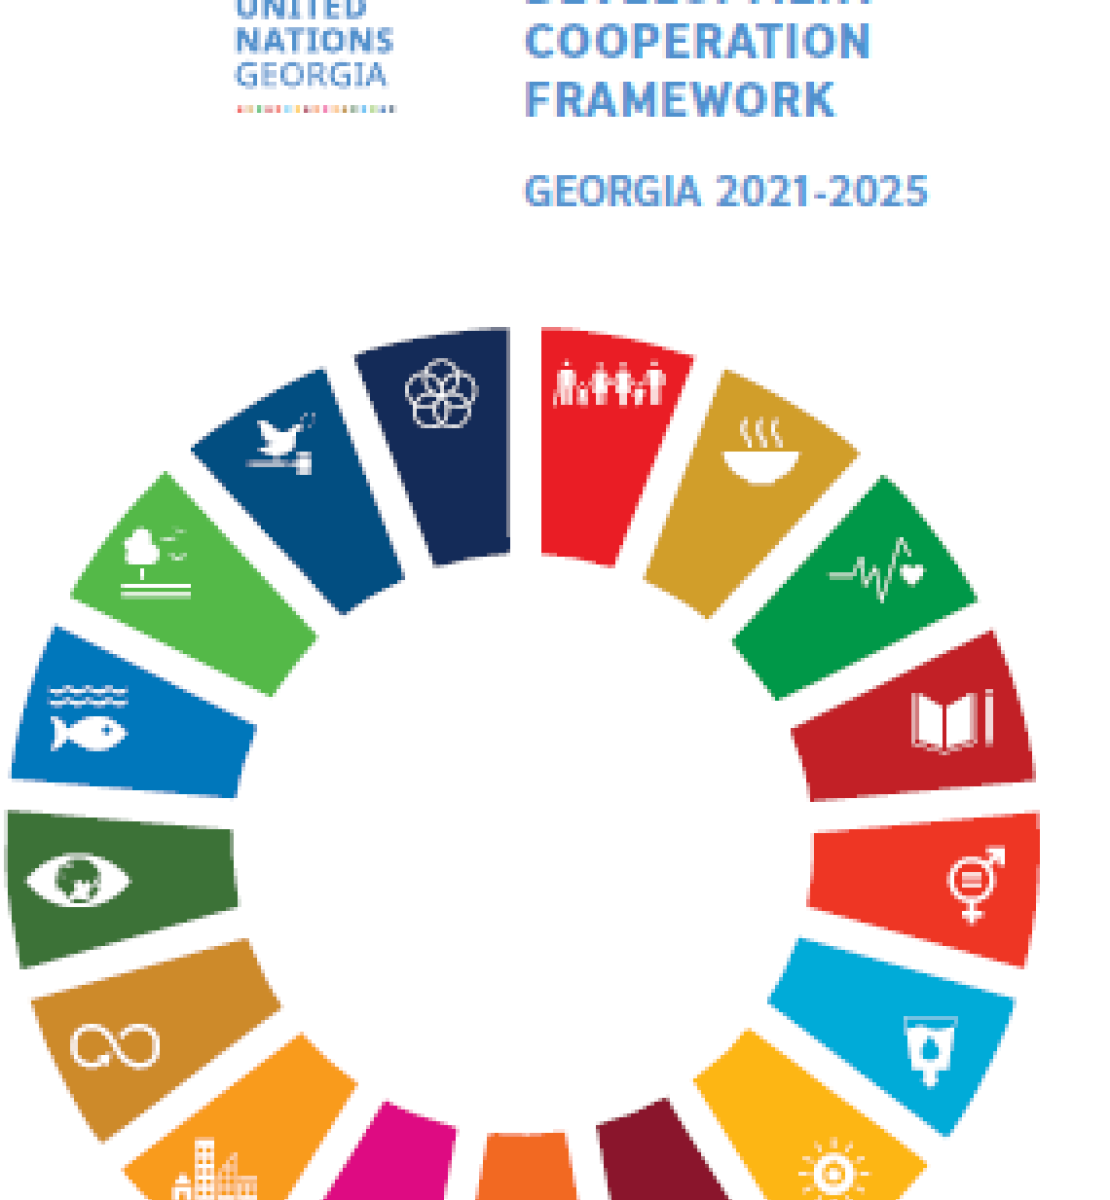 White background with the Goverment Logo and UN logo to the top right of the page.  The SDG wheel is also include as a large graphic on the middle of the page.